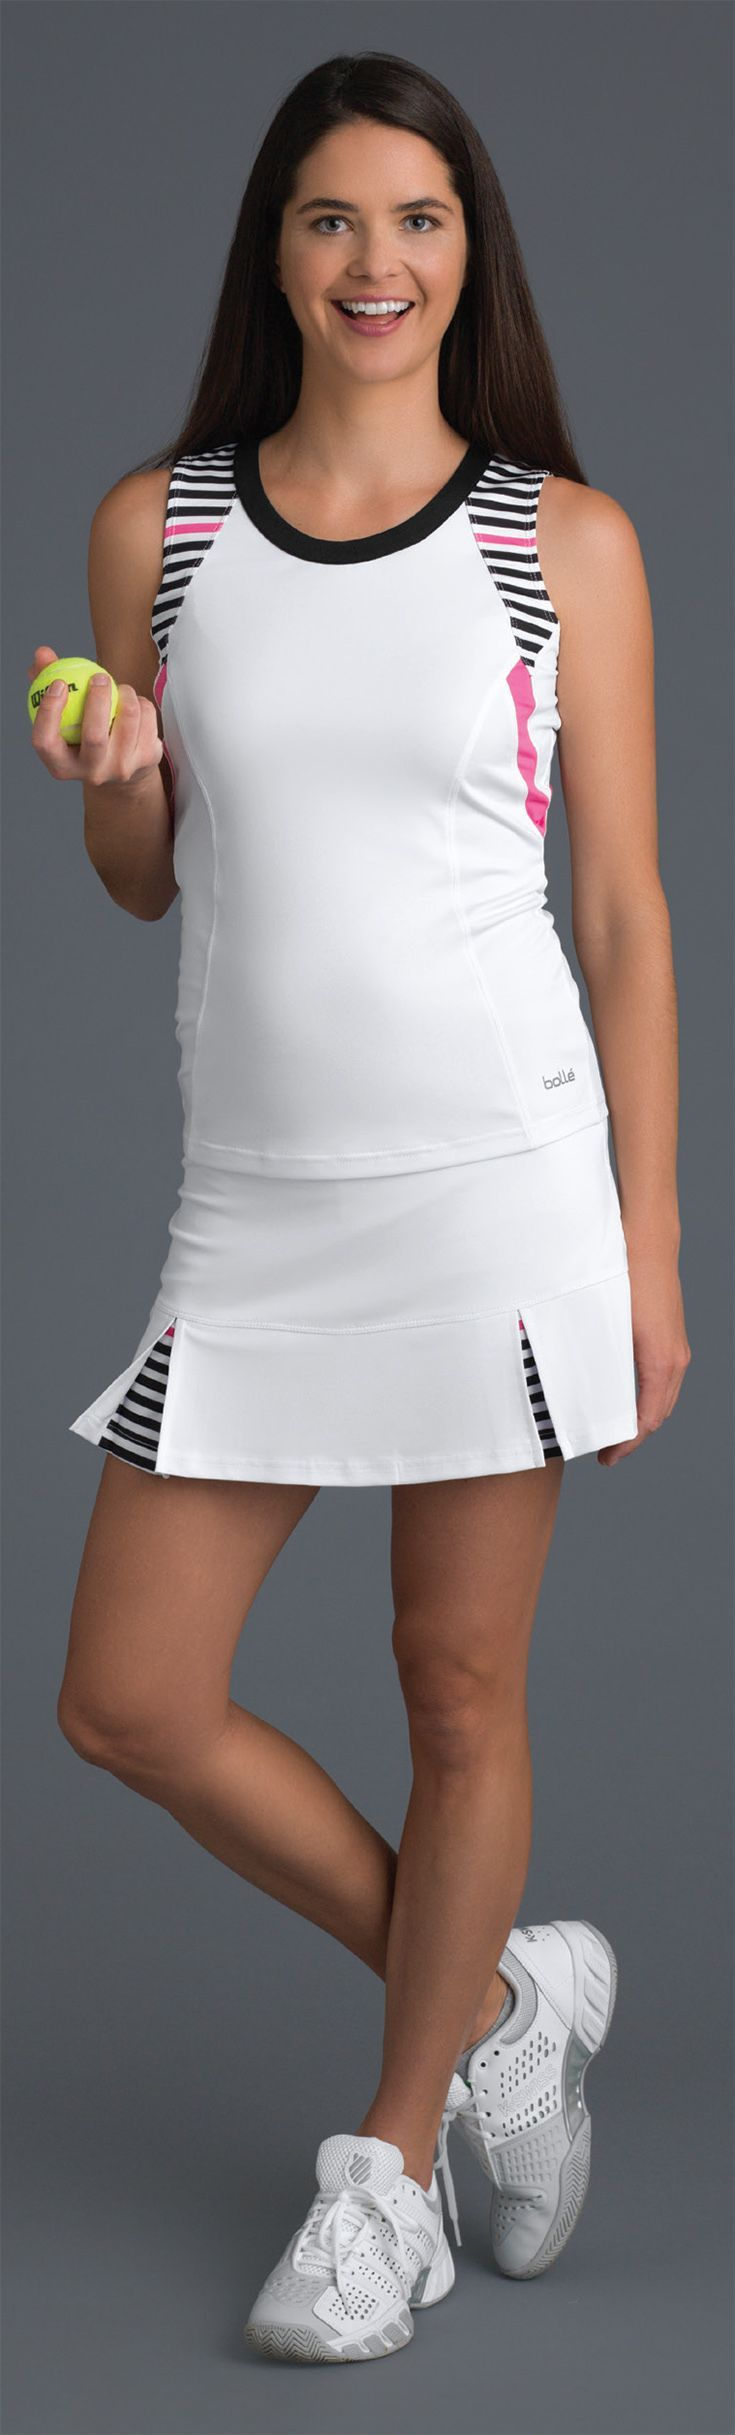 Check out Bolle's Verona women's tennis collection for spring 2018. This premier collection of women's tennis apparel includes tennis skirts, tops, and tanks in hibiscus pink, black, white and verona print fabric for the ideal update to your look for the season. Shop more Bolle tennis and activewear apparel at MidwestSports.com. #tennisskirt